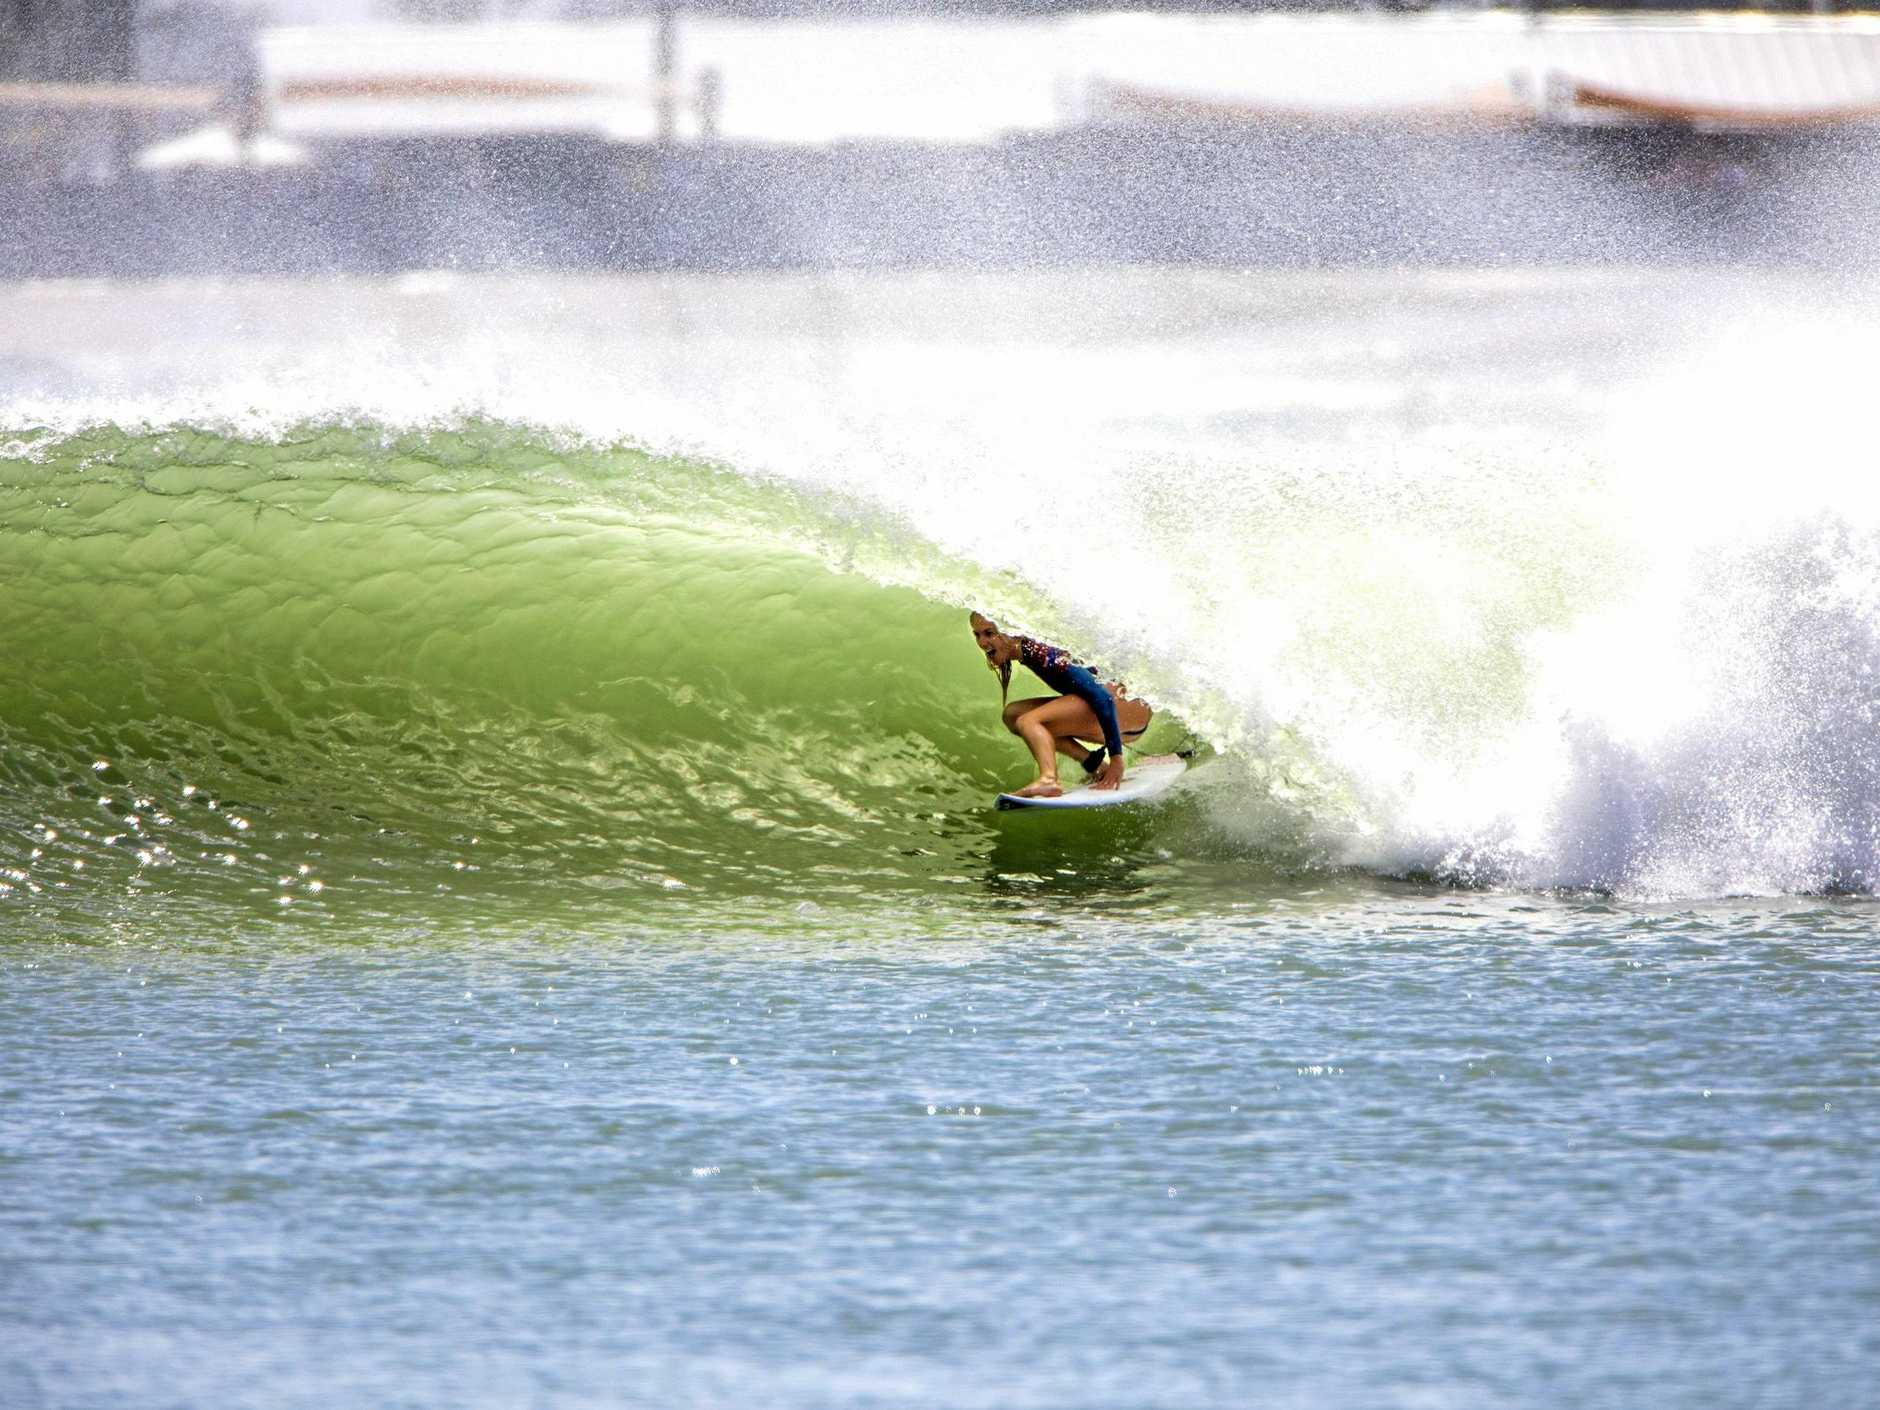 Six-time world champion Stephanie Gilmore gets cheeky with a cheater five inside the wave pool barrel at Kelly Slaters Surf Ranch at Lemoore, California.